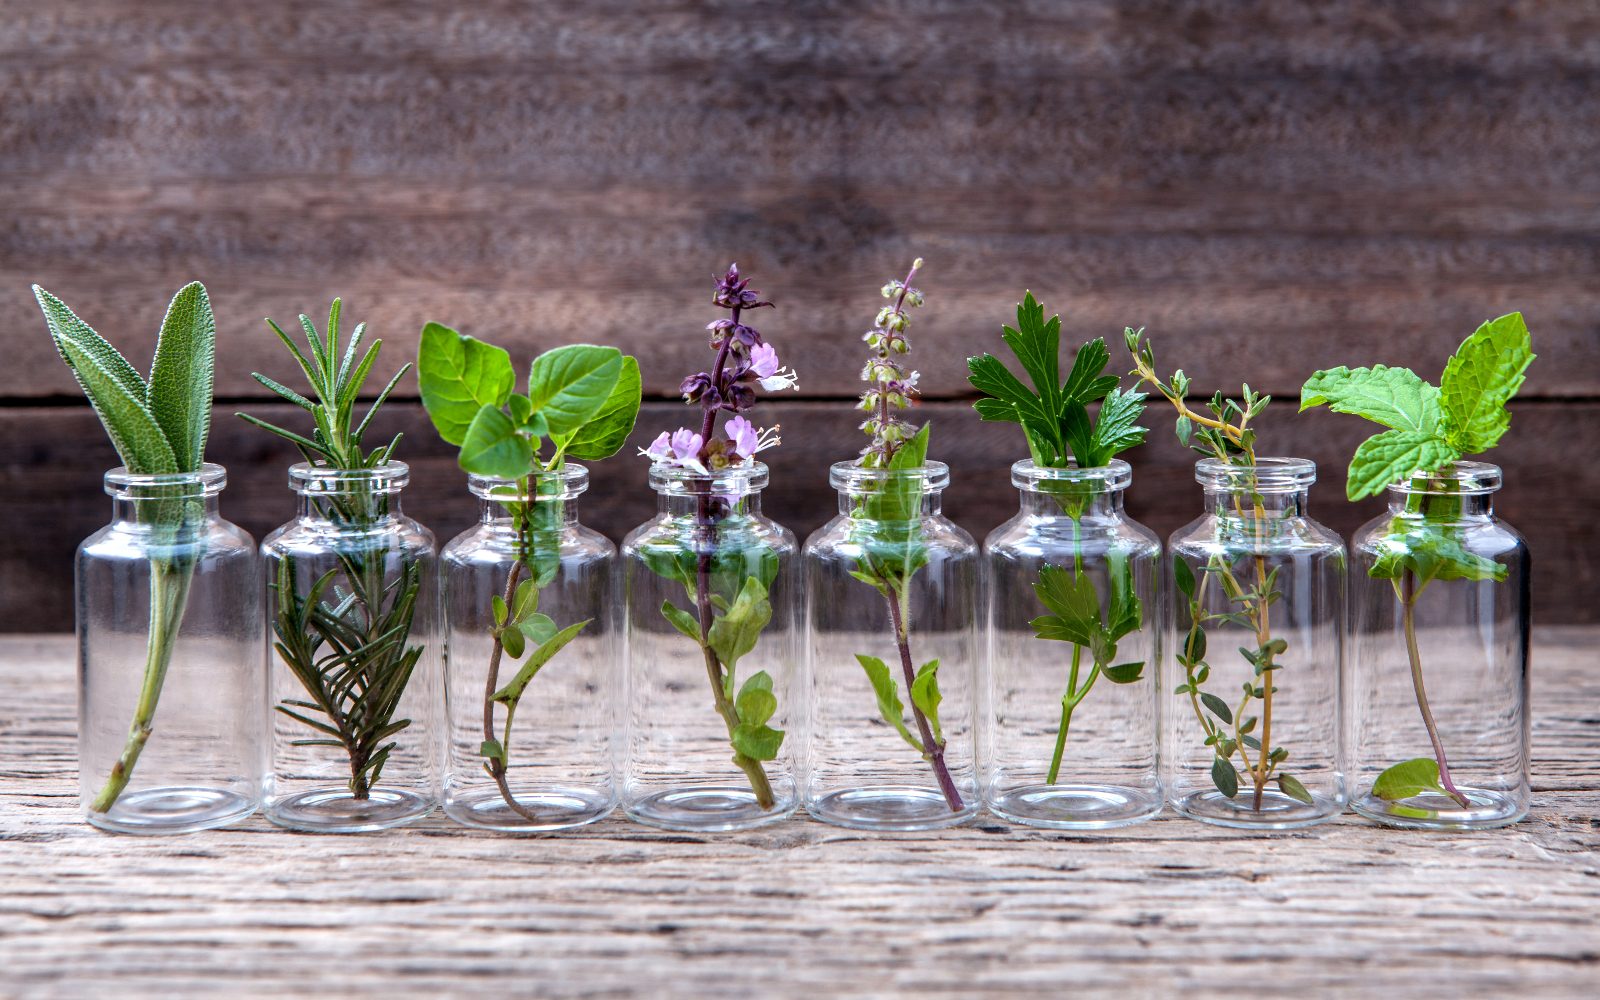 Small glass jars each with a sprig of a different herb